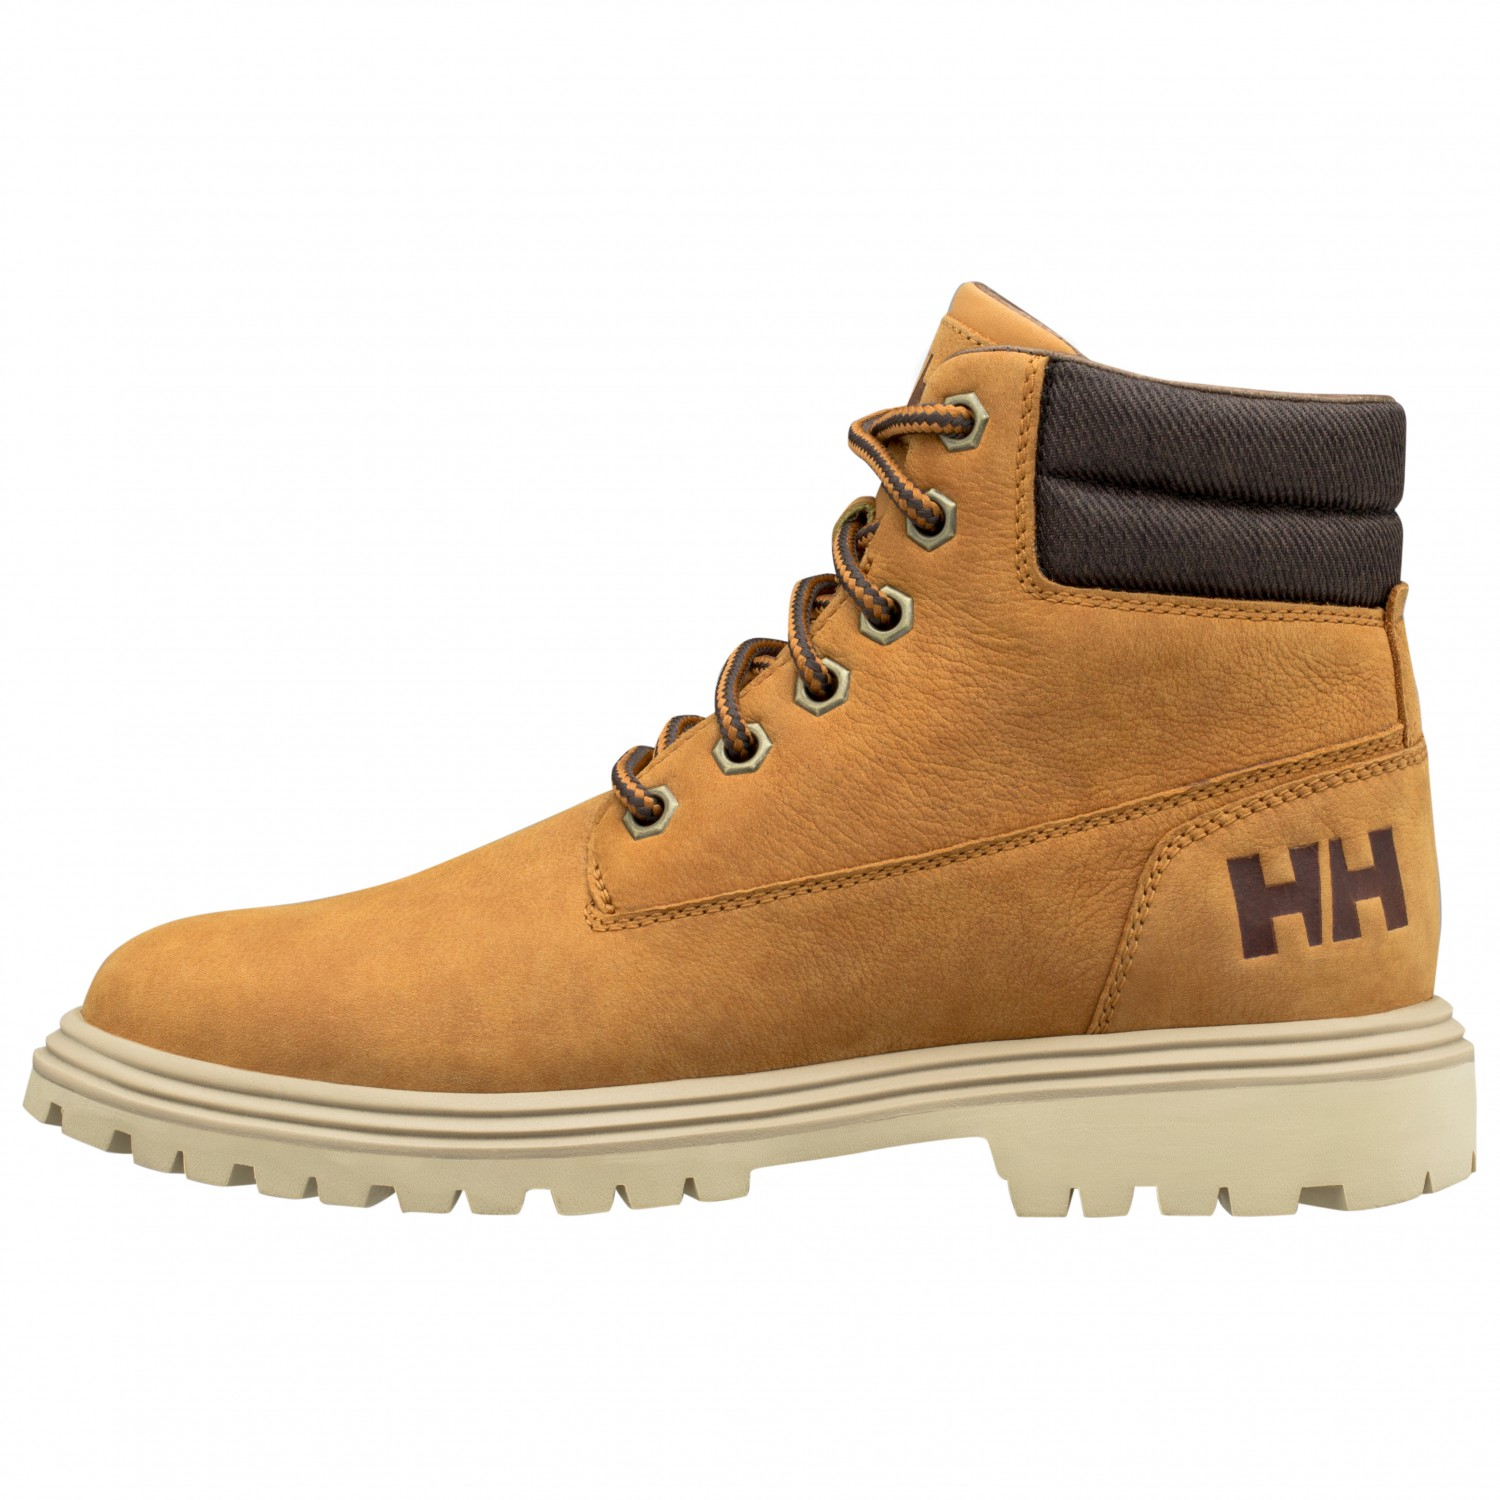 the best attitude cdffb 74d97 Helly Hansen - Women's Fremont - Winter boots - Honey Wheat / Beluga / Pale  Gum | 10 (US)